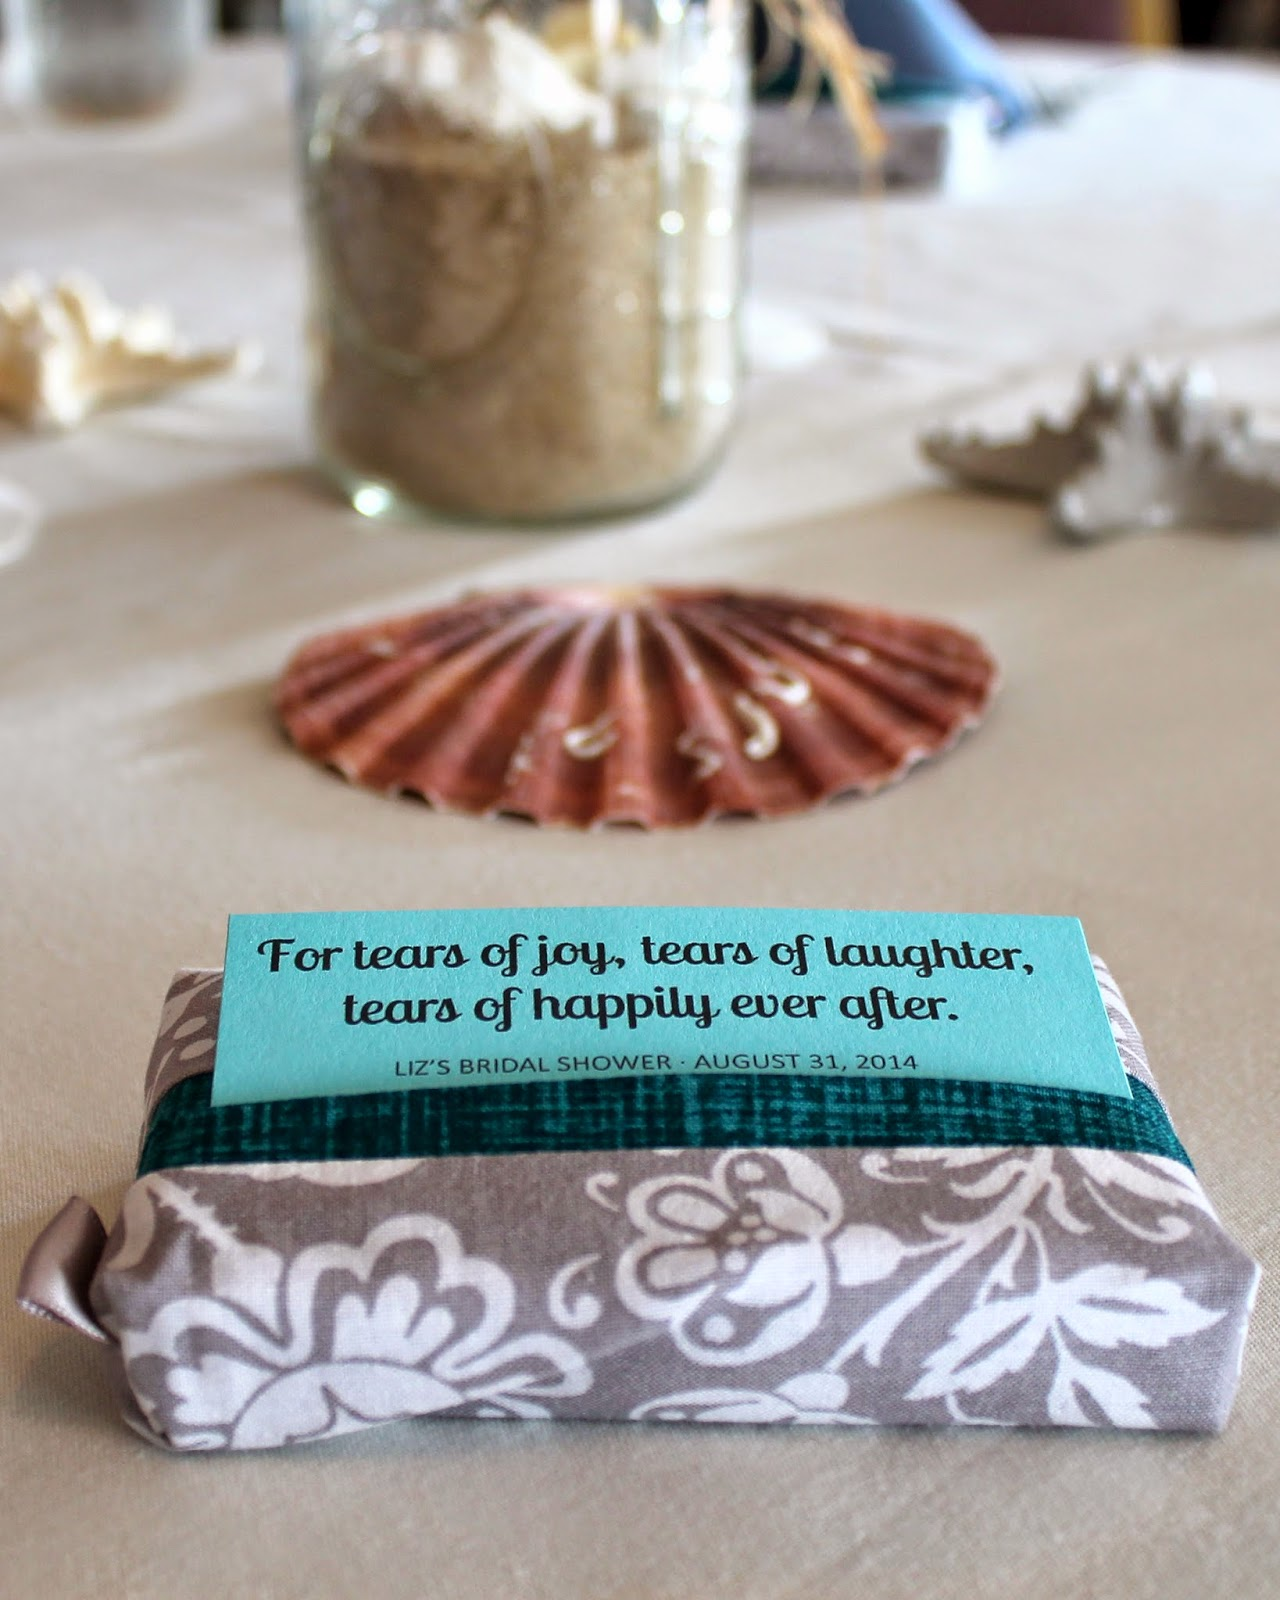 Sew this pocket tissue pack cover as a favor for a bridal shower or a wedding! | The Inspired Wren